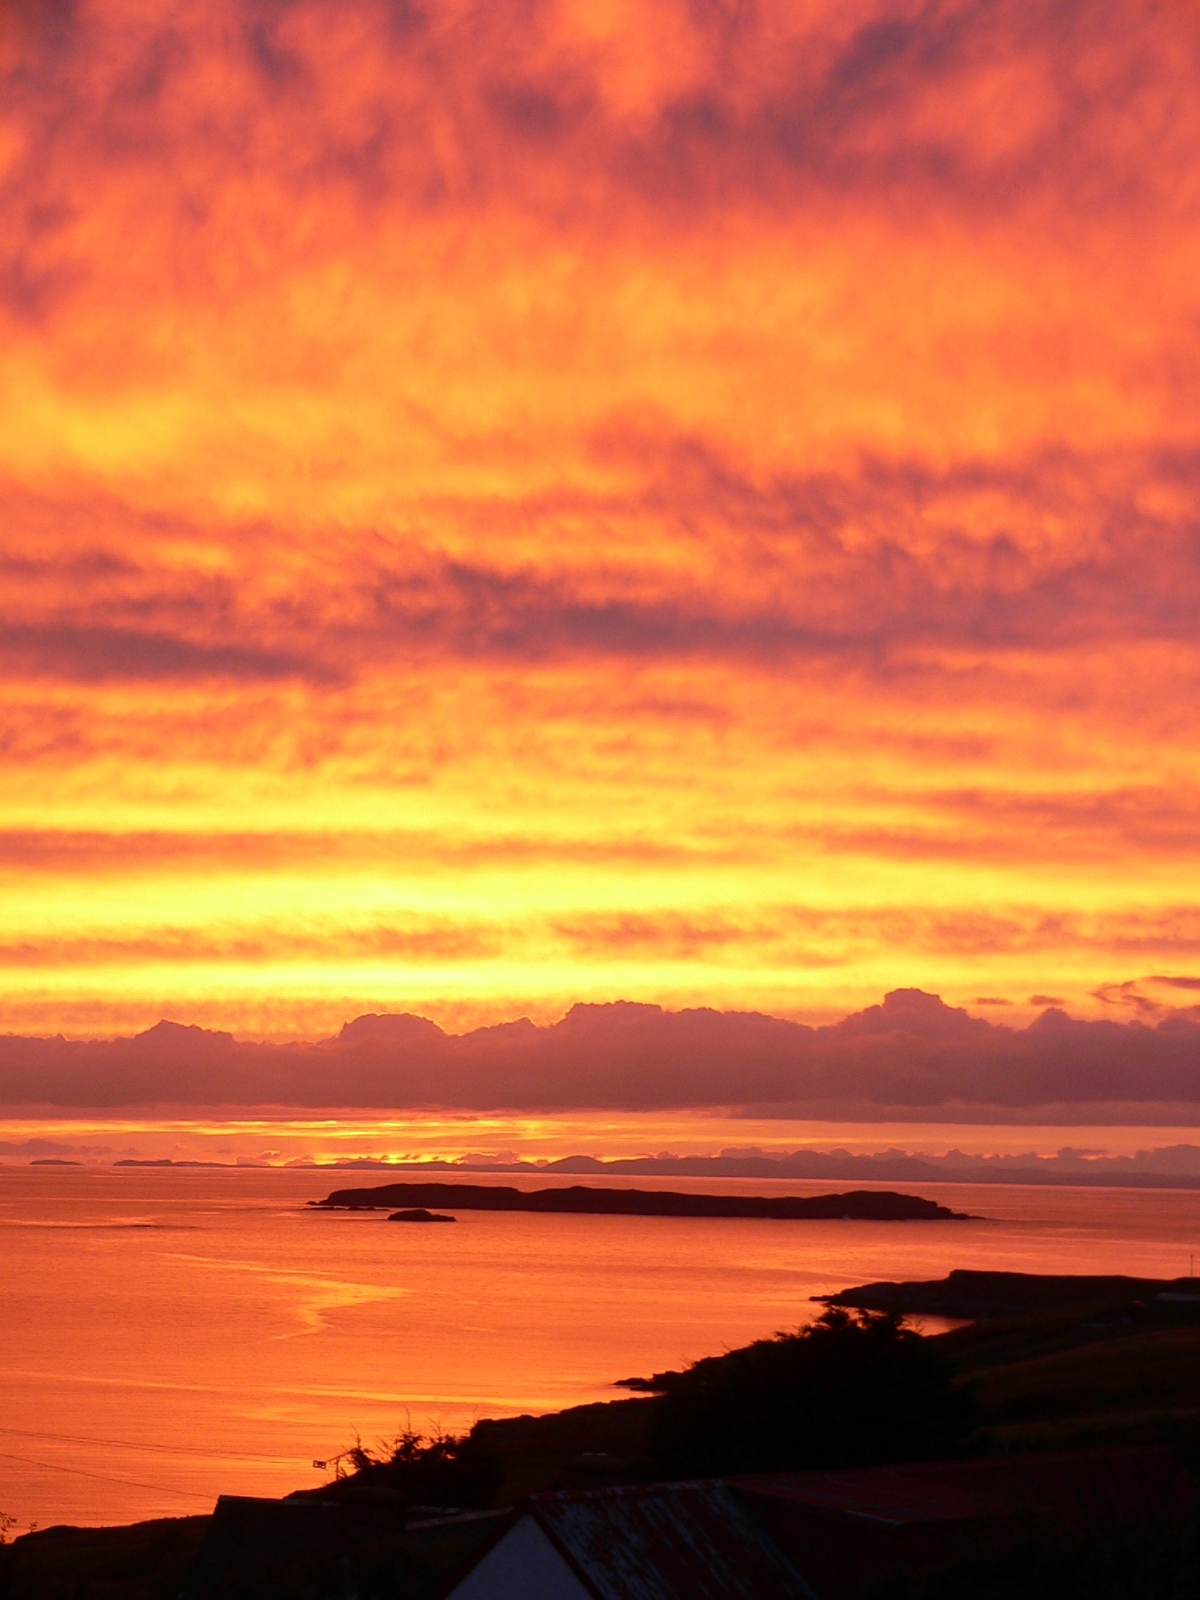 Incredible sunset, taken from Summer Isles Croft and untouched by Photoshop!